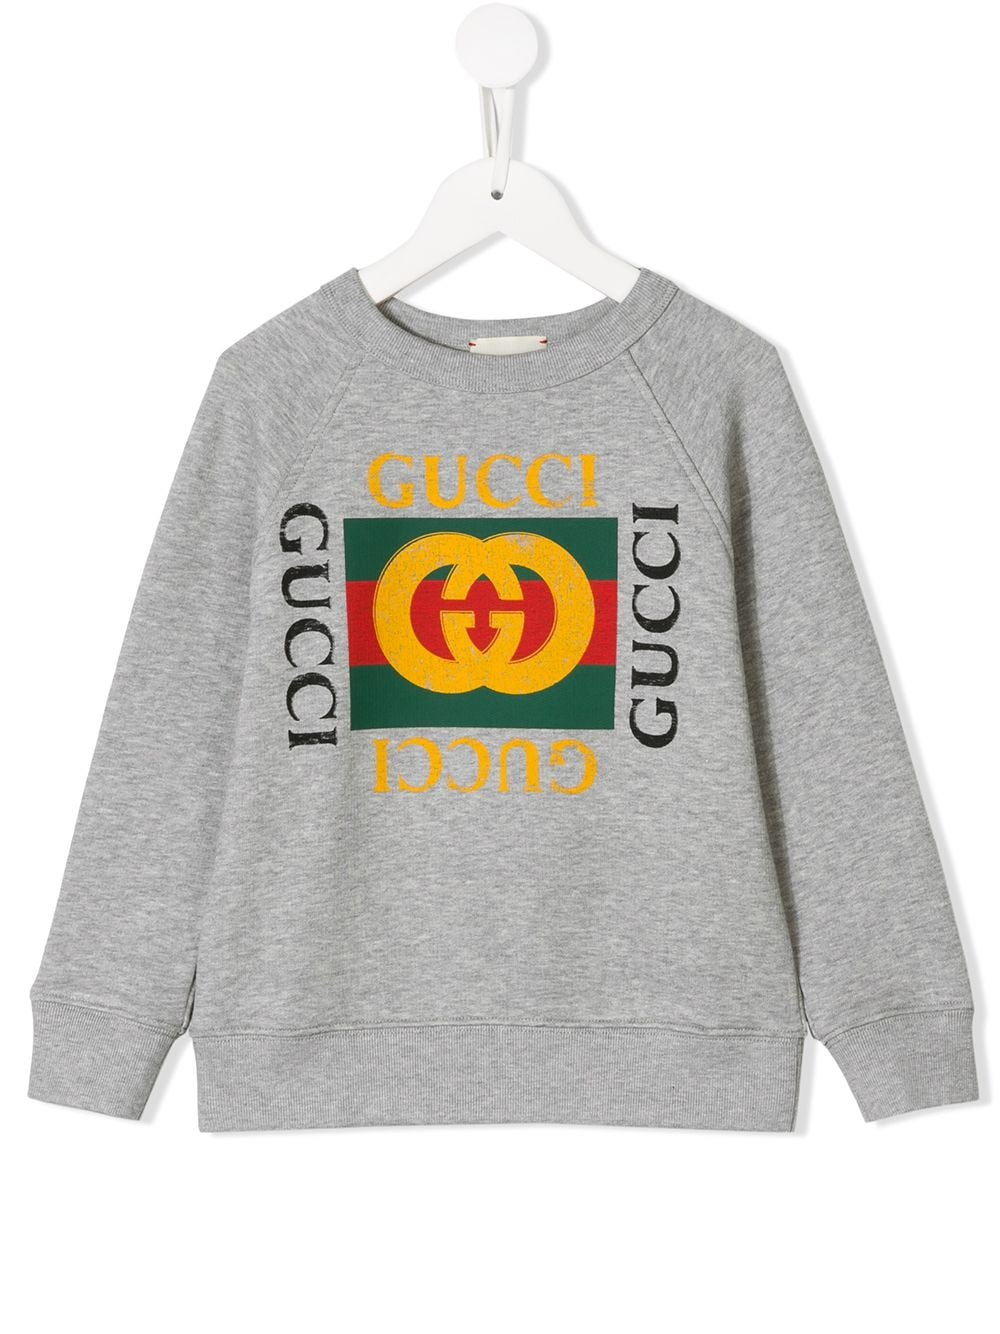 Gucci Kids logo print sweater - Grau von Gucci Kids